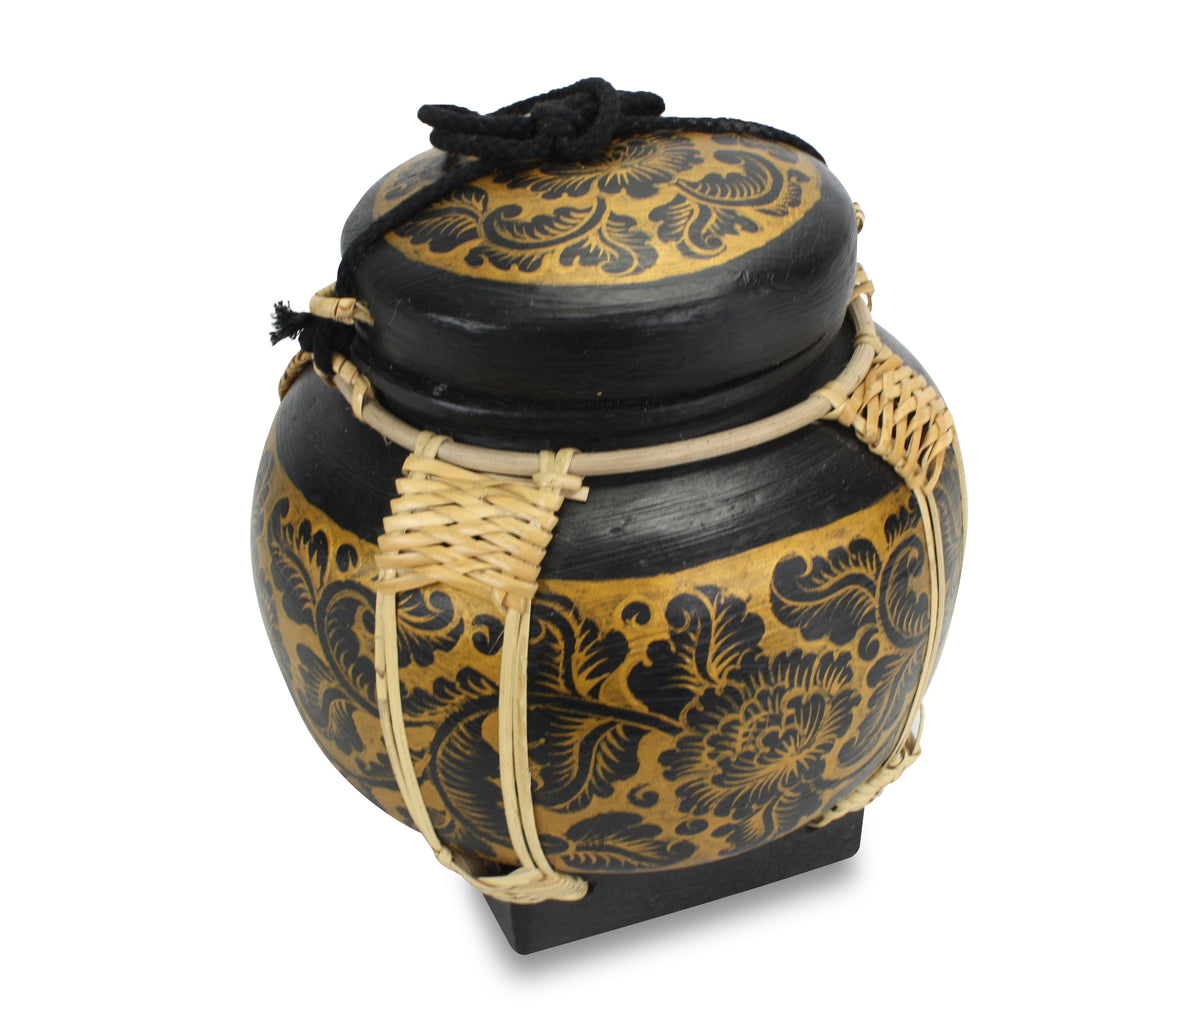 Rice seed box - Large Spherical Box, 23cm high, BGR1 - farangshop-co